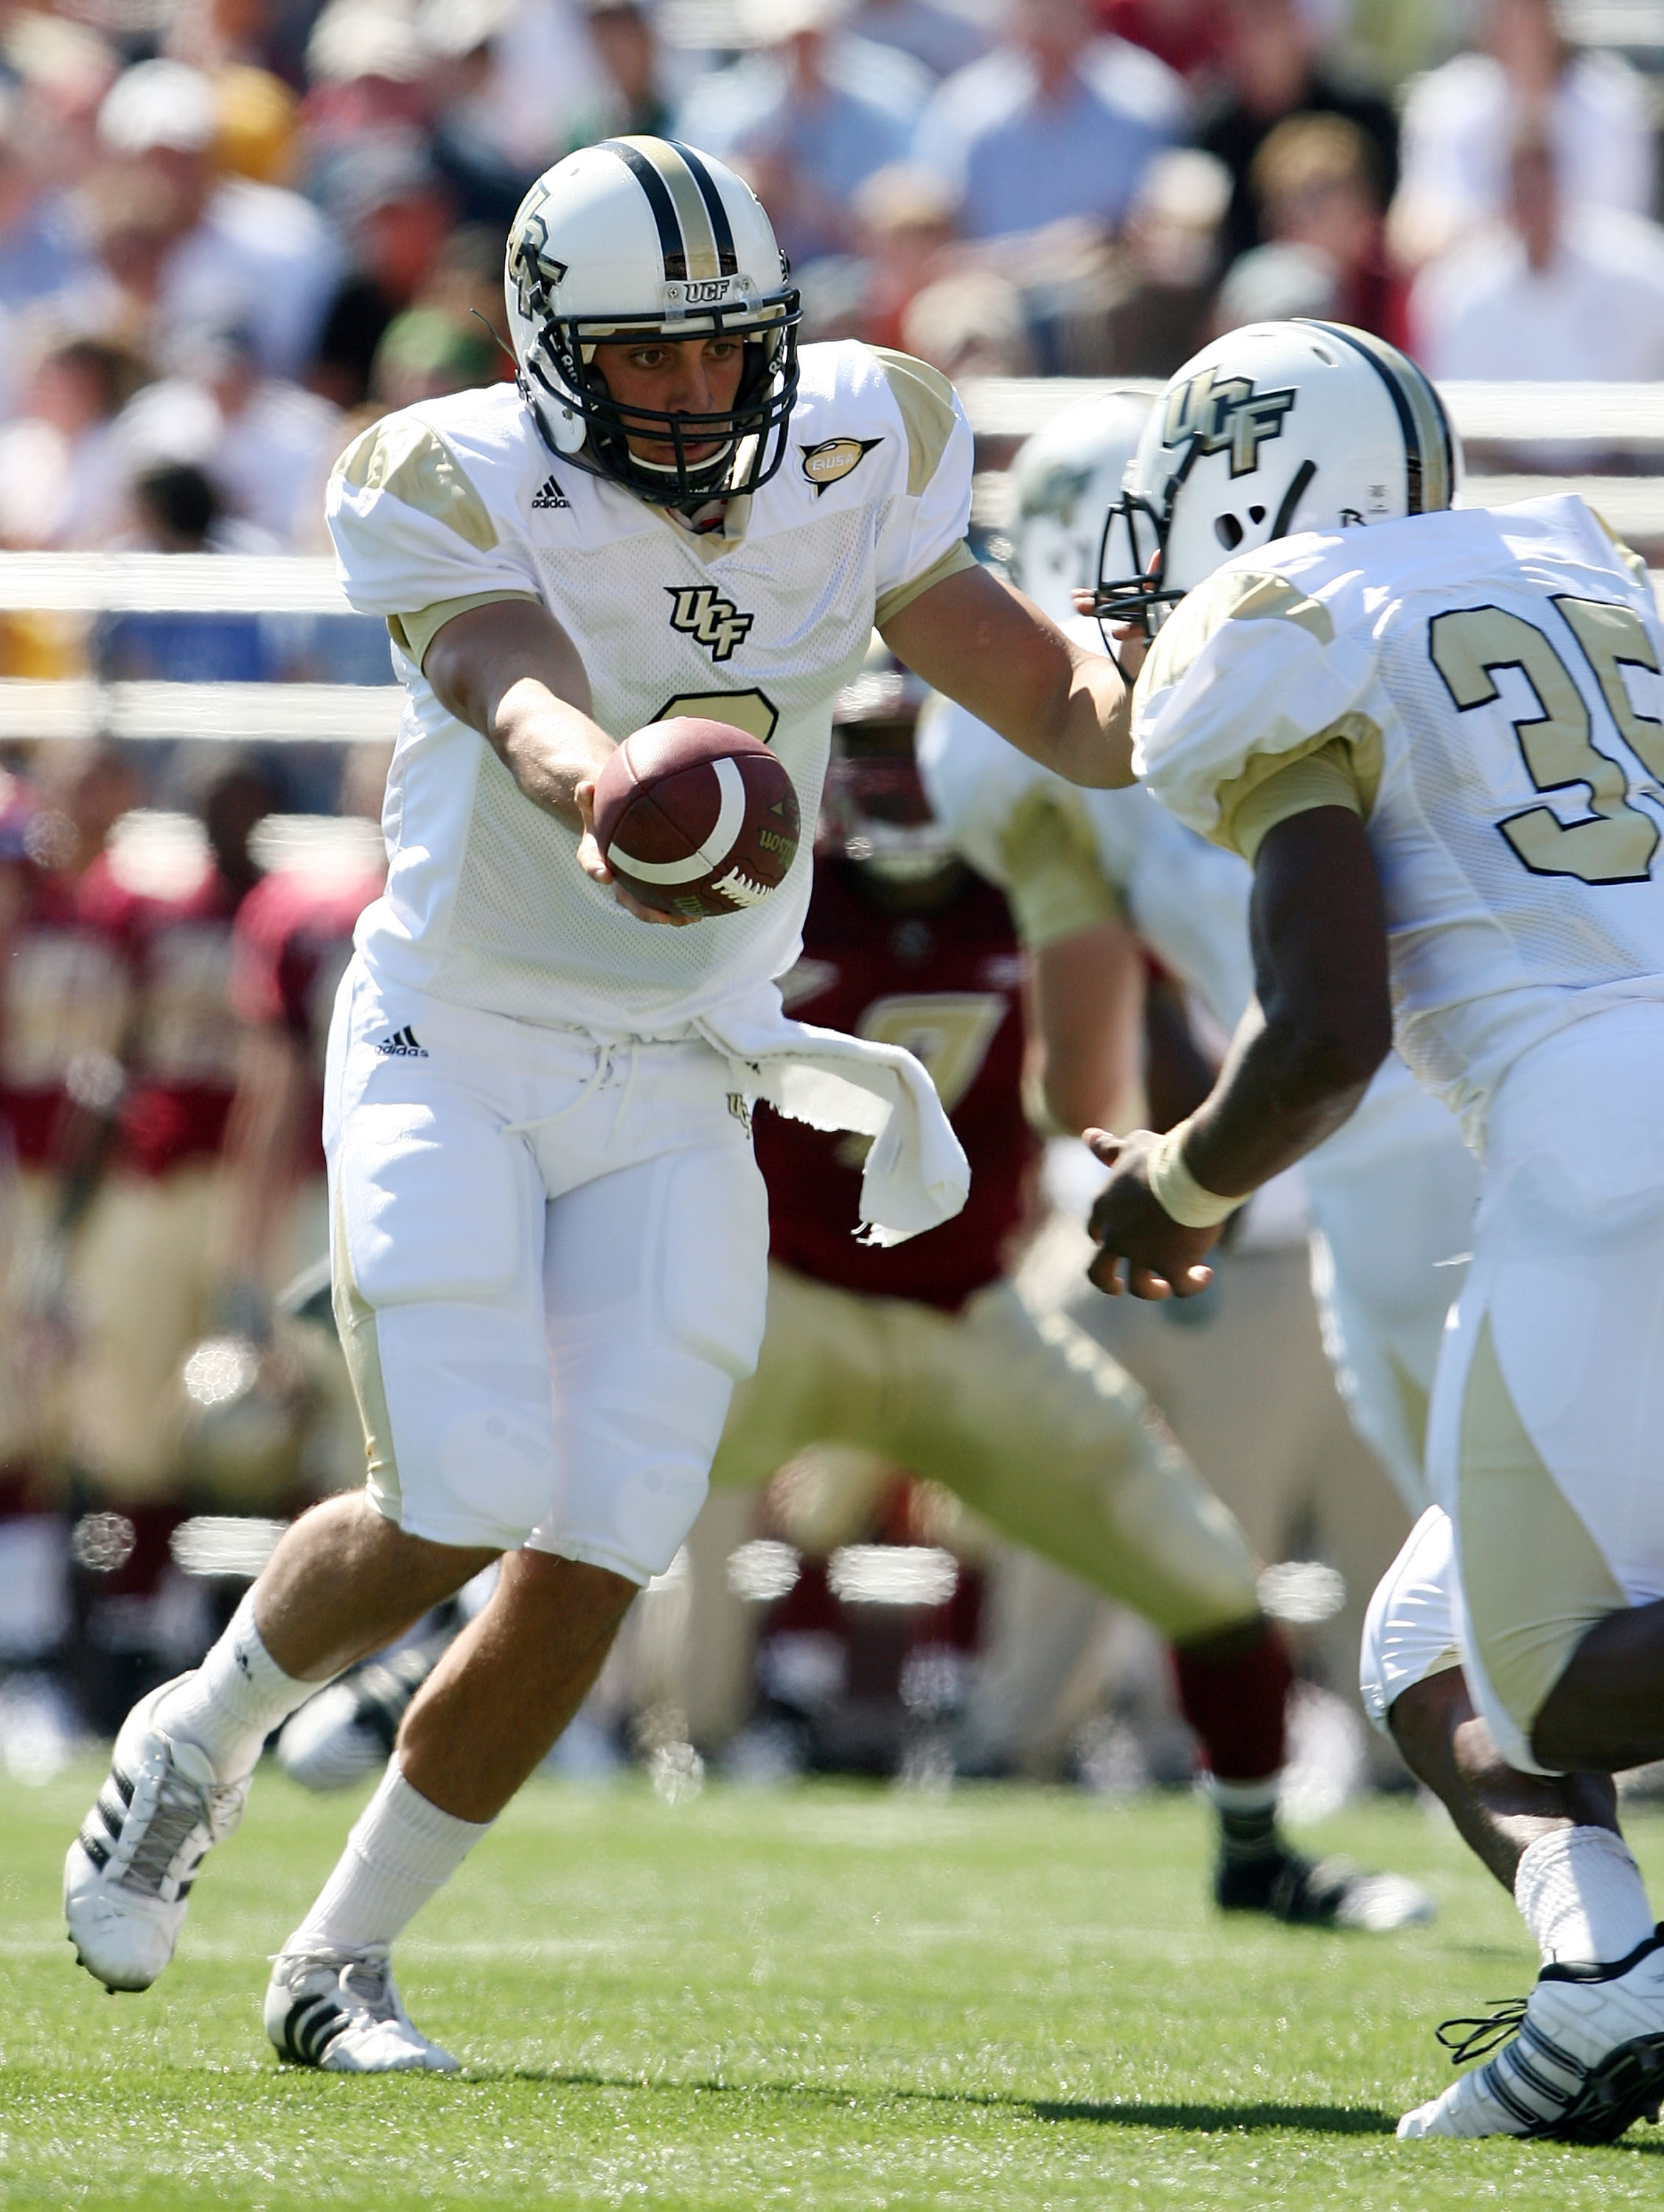 CHESTNUT HILL, MA - SEPTEMBER 20:  Michael Greco #2 of the Central Florida Knights hands the ball off to Ronnie Weaver #35 in the first half against the Boston College Eagles on September 20, 2008 at Alumni Stadium in Chestnut Hill, Massachusetts.  (Photo